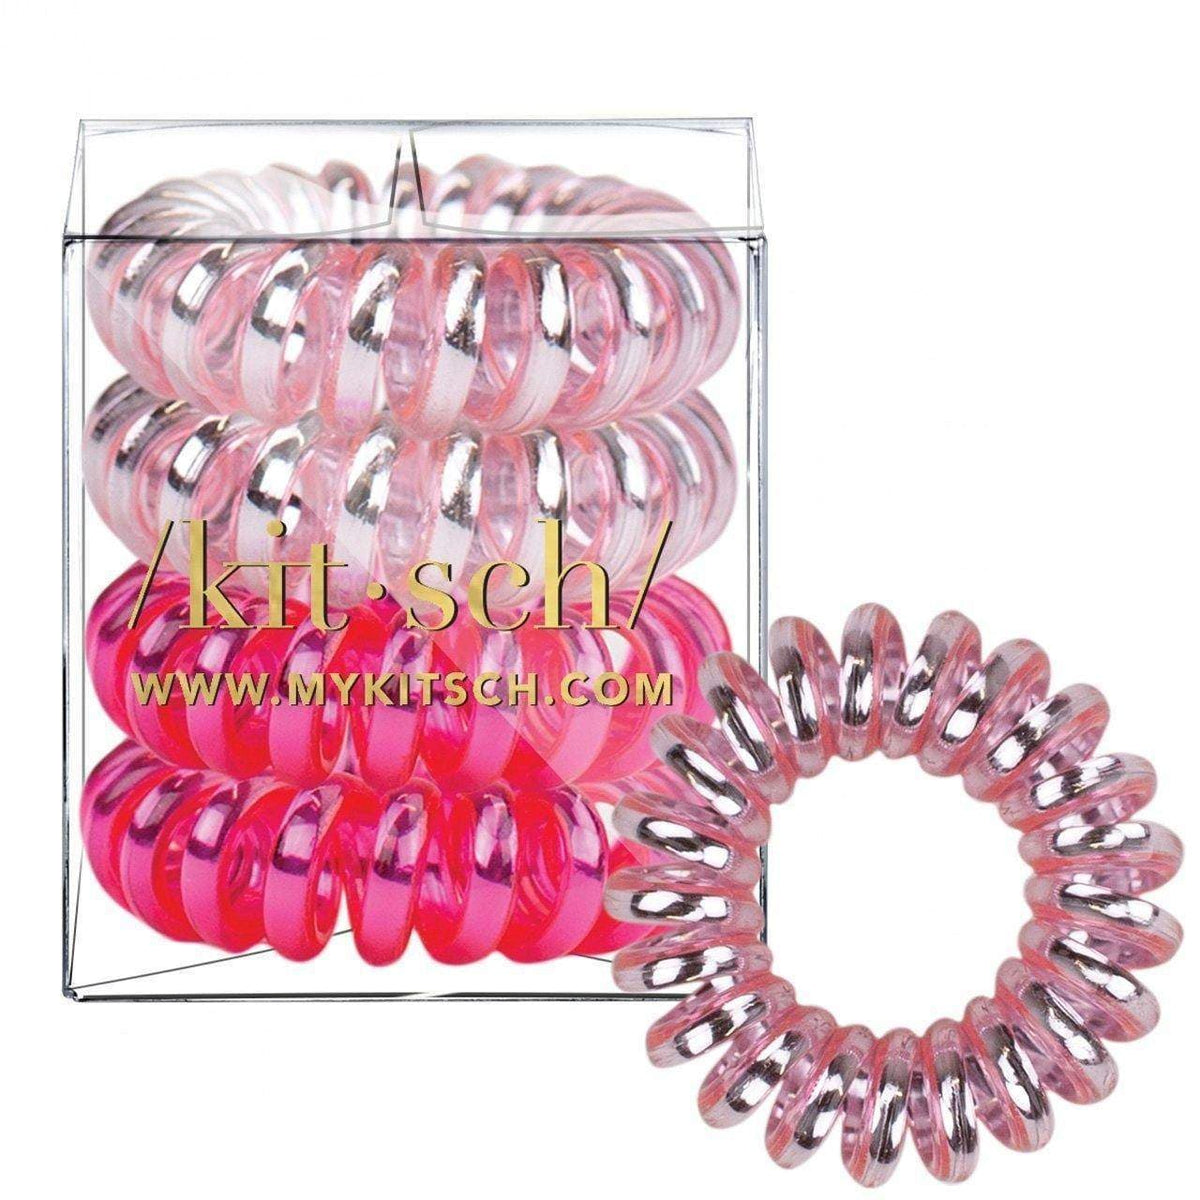 4 Pack Hair Coils - Crush - KITSCH